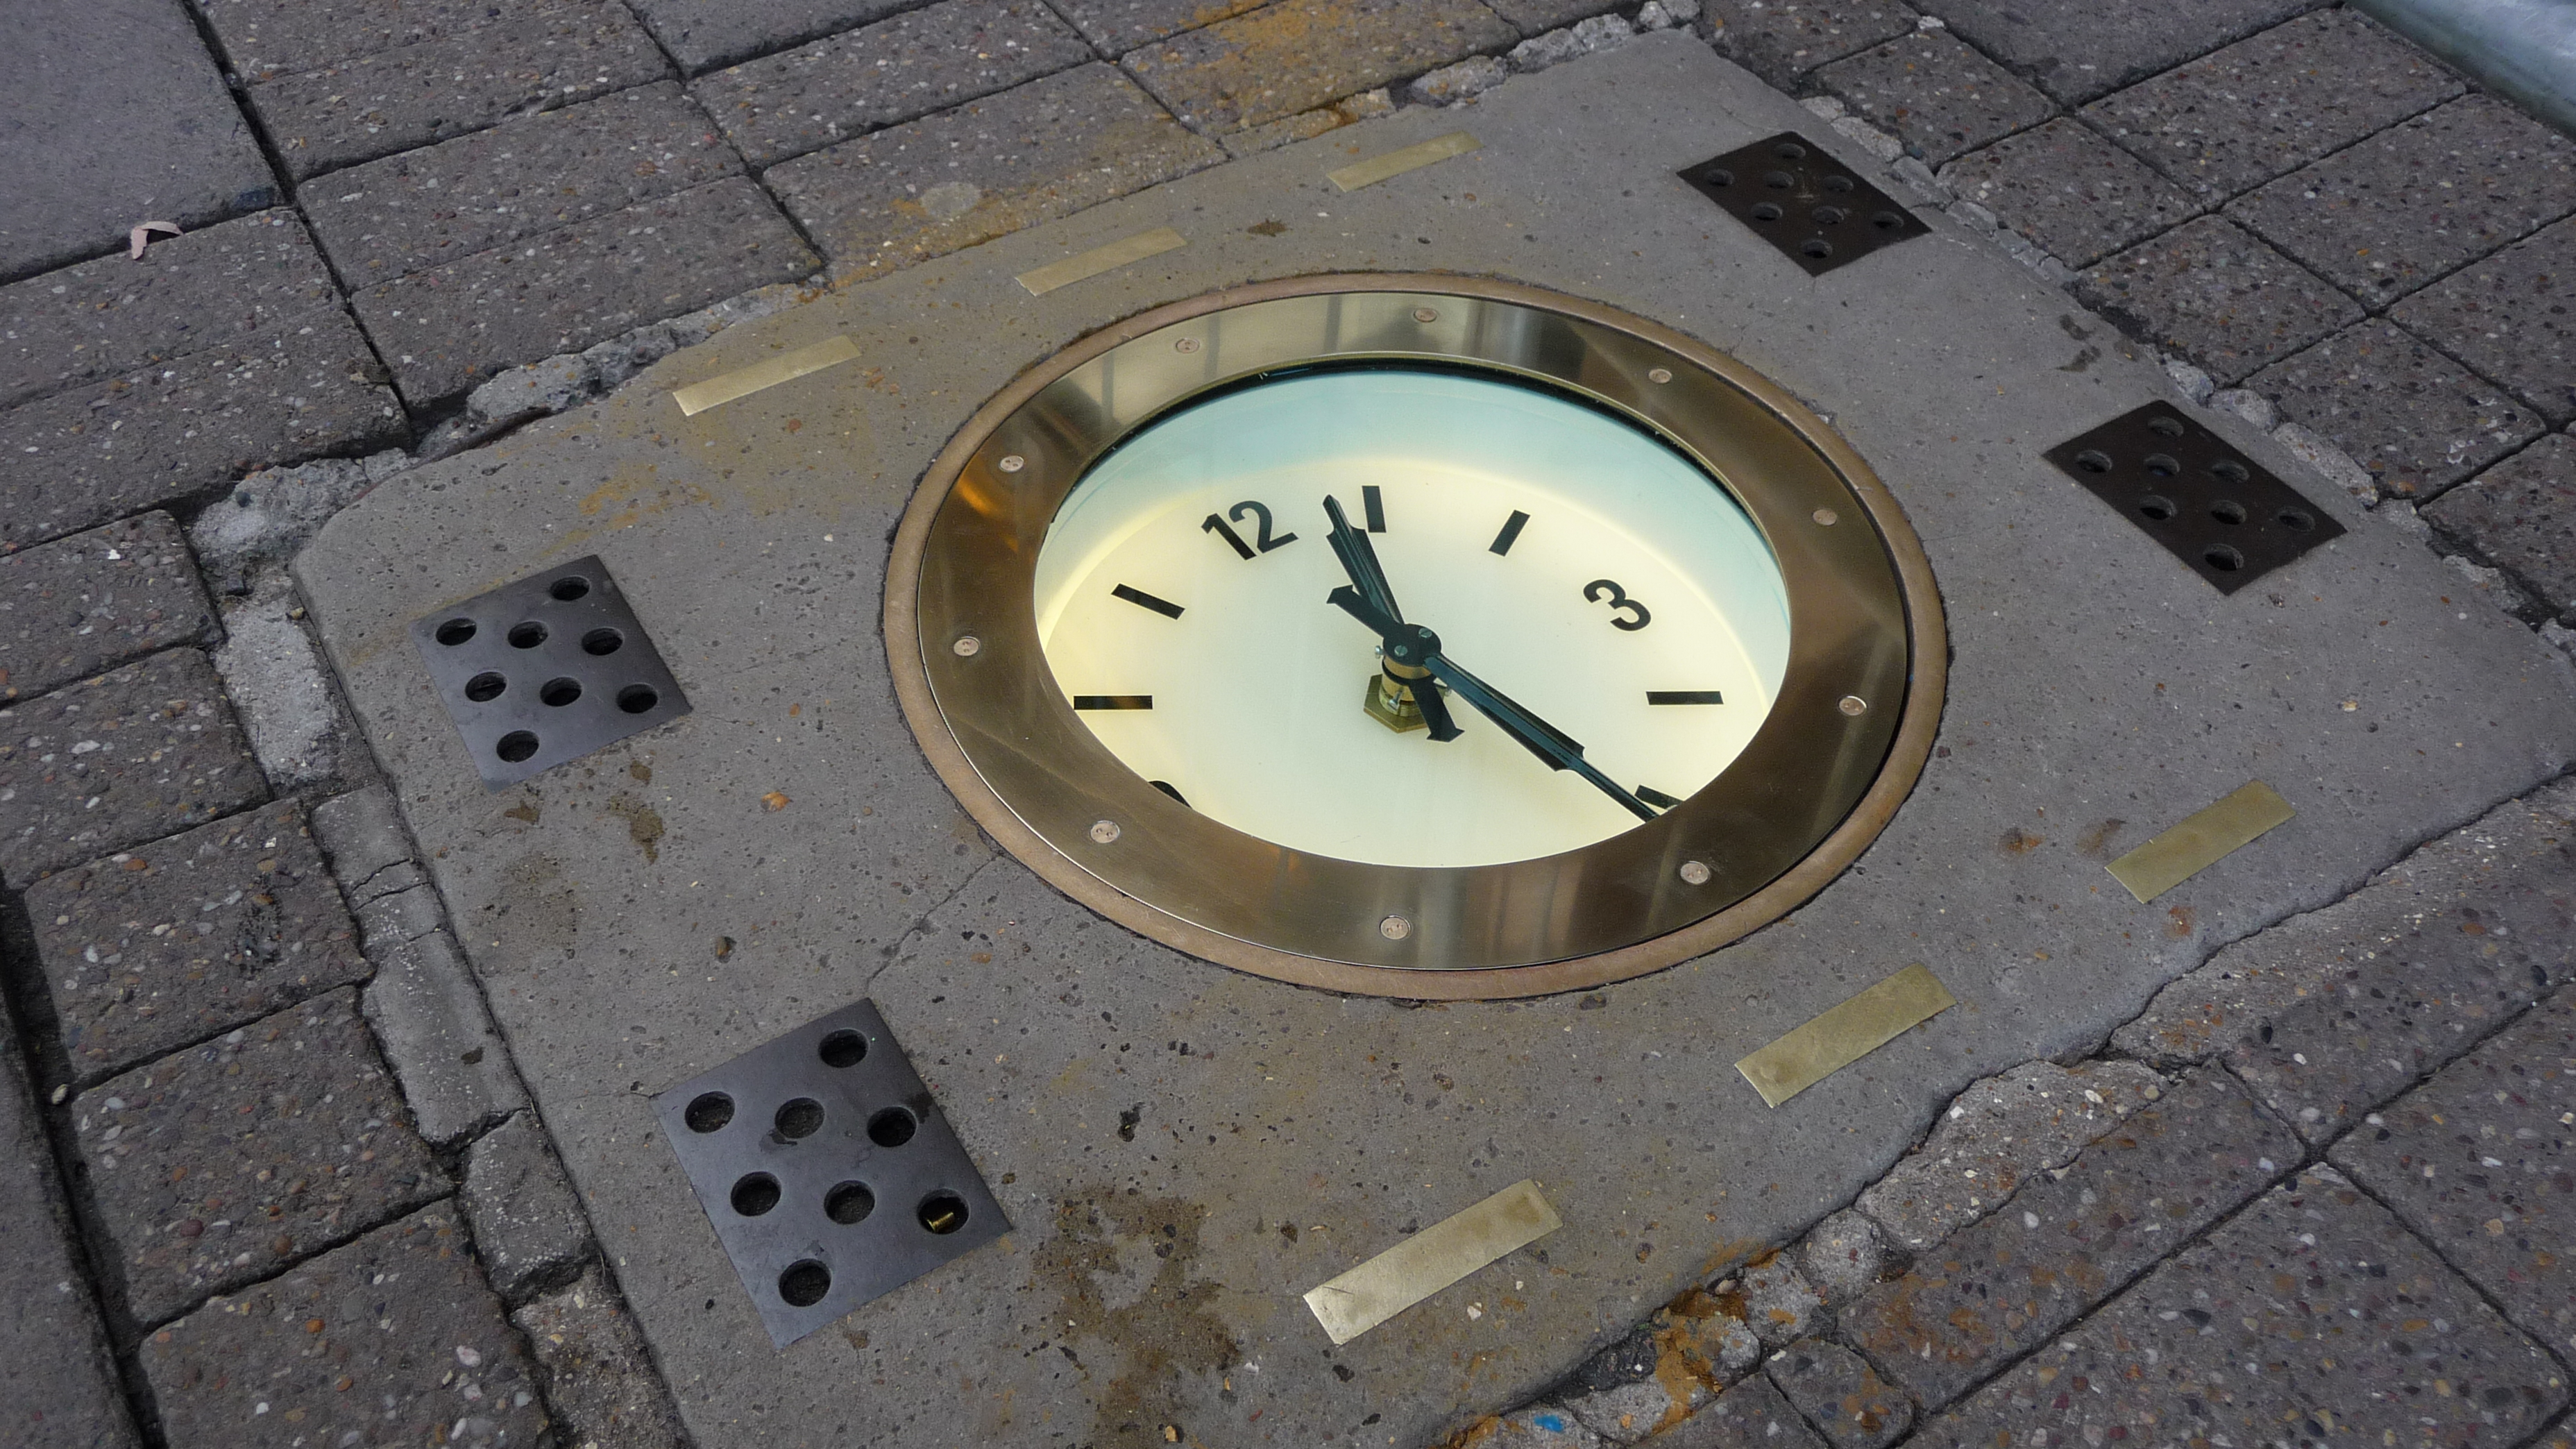 Pavement clock